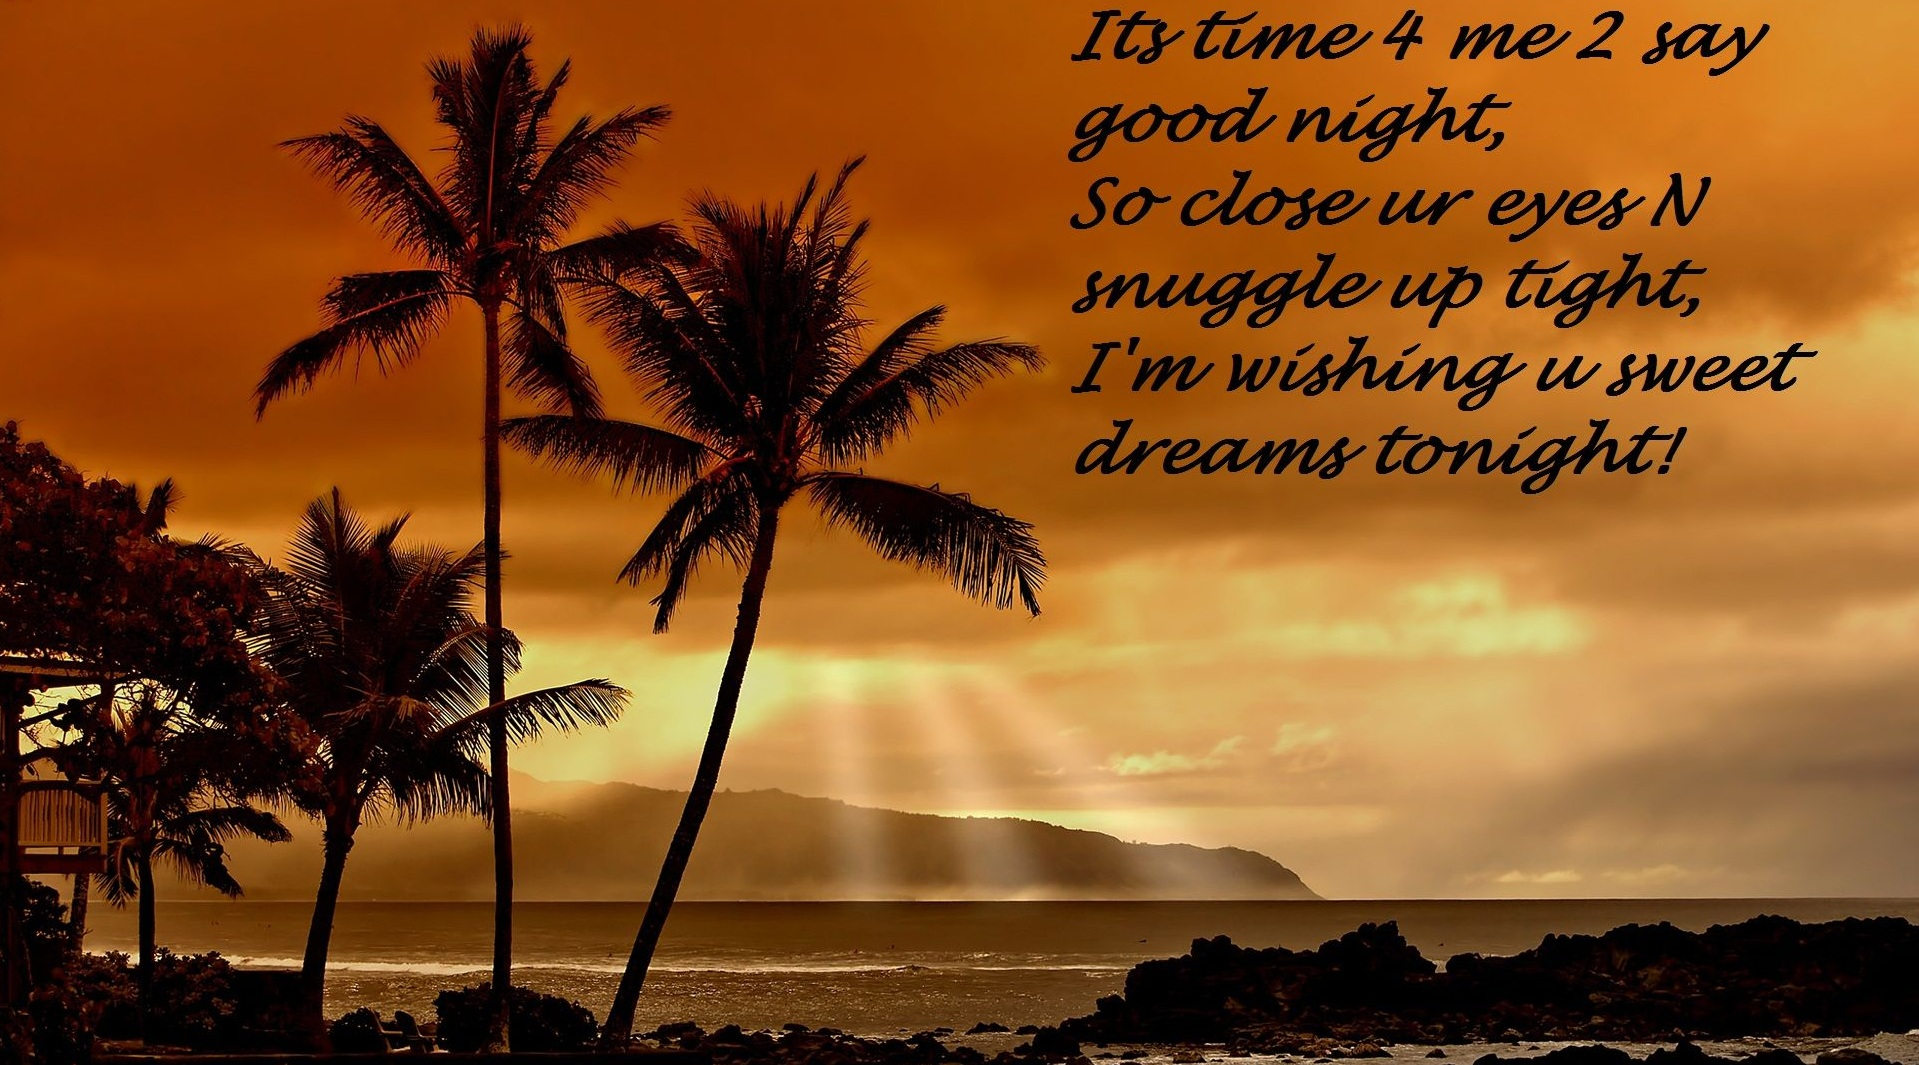 Inspirational Quotes For Good Night